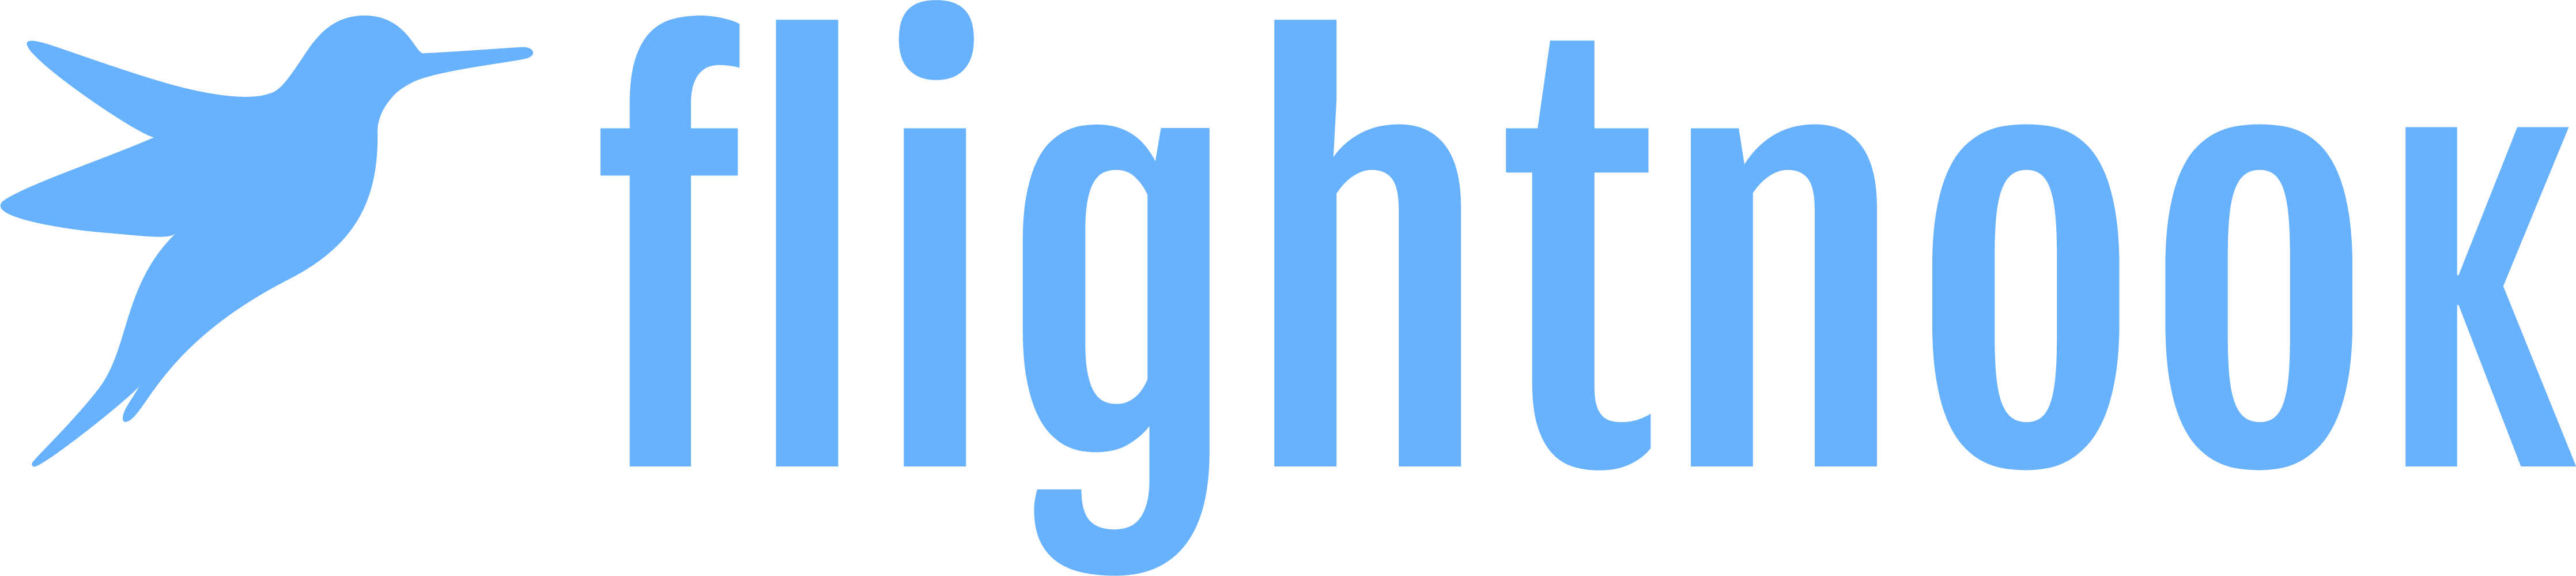 Flightnook-logo-blue-V2